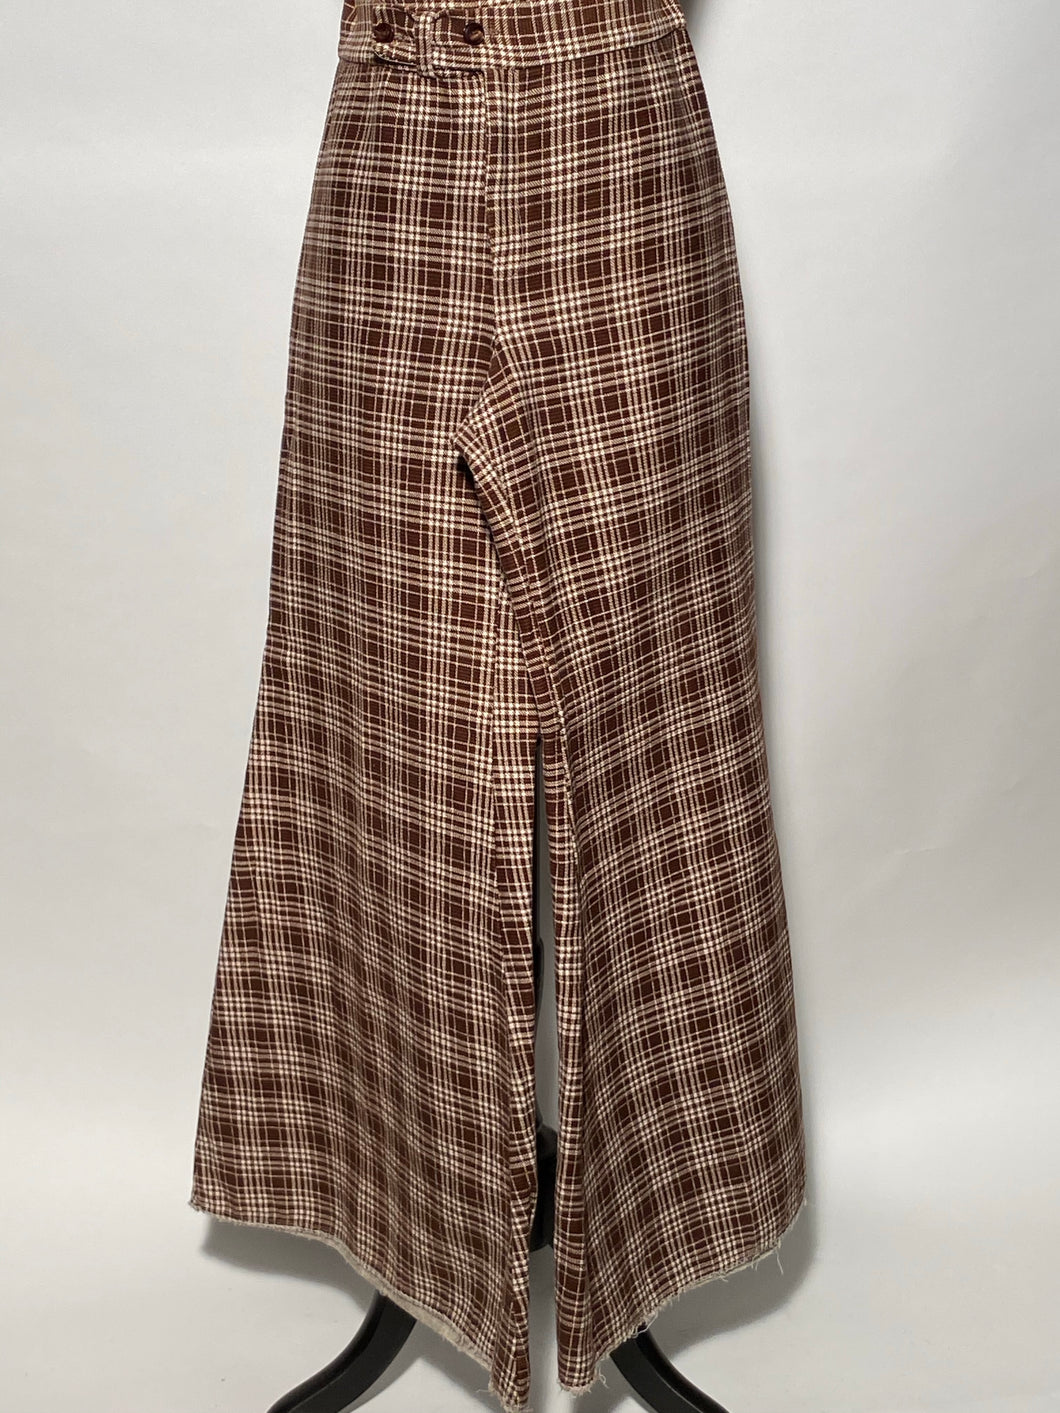 Womens 1970s High Waisted Brown & White Plaid Palazzo Pants By Put On USA